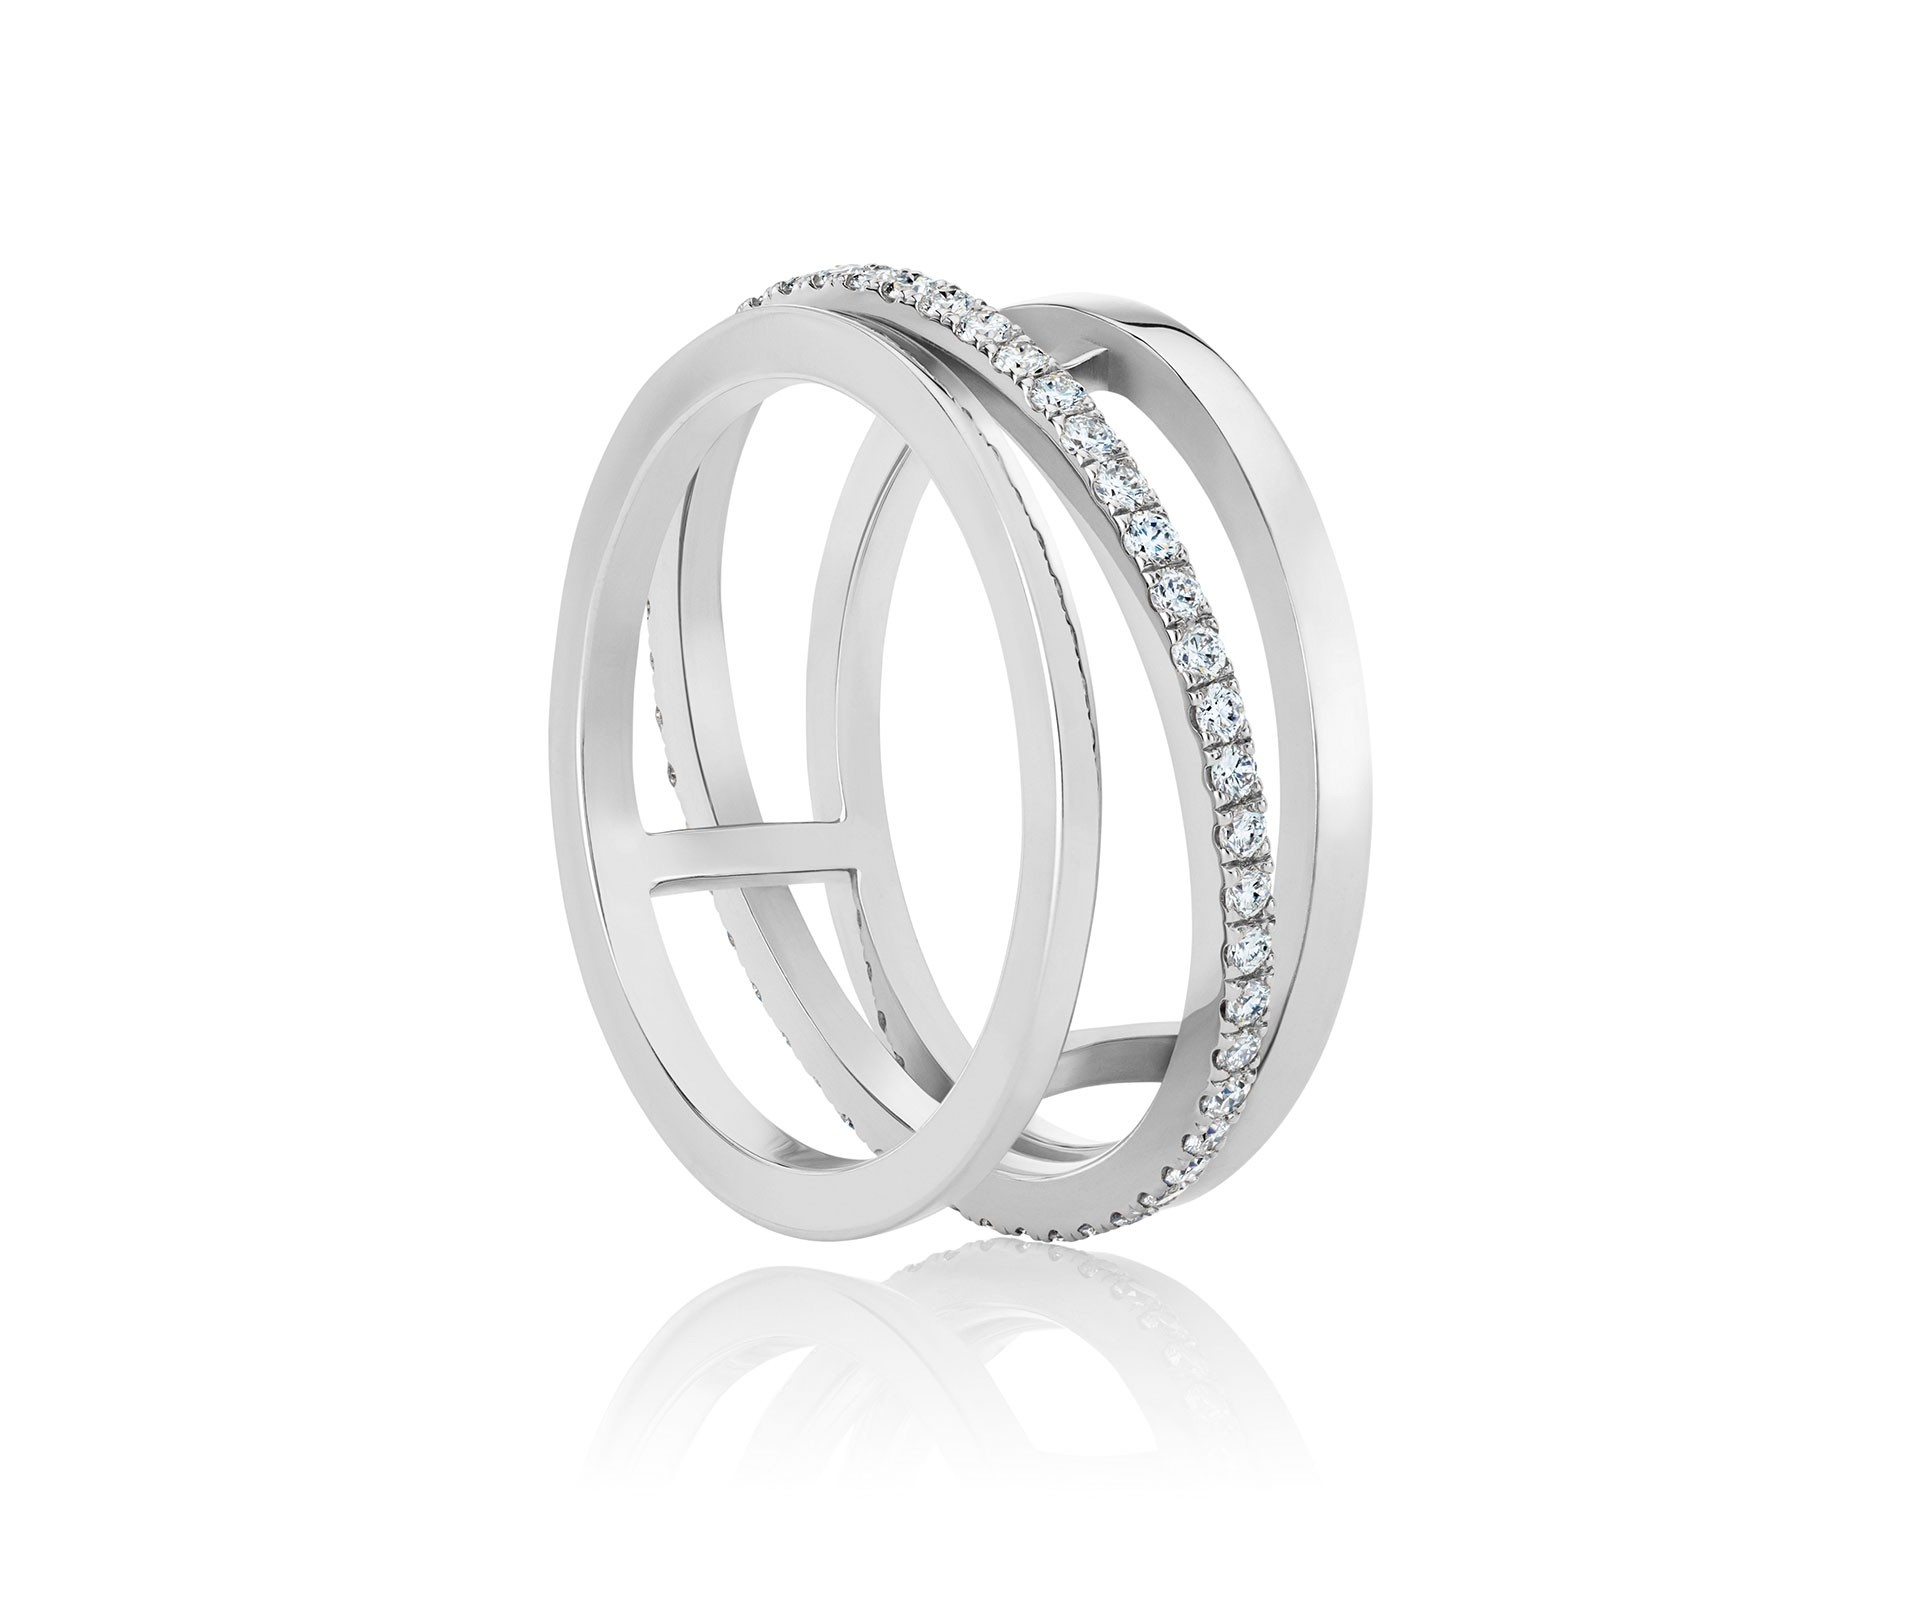 Diamond Rings And Bands For Women | De Beers Us In 2019 Diamond Layered Anniversary Ring In White Gold (View 18 of 25)